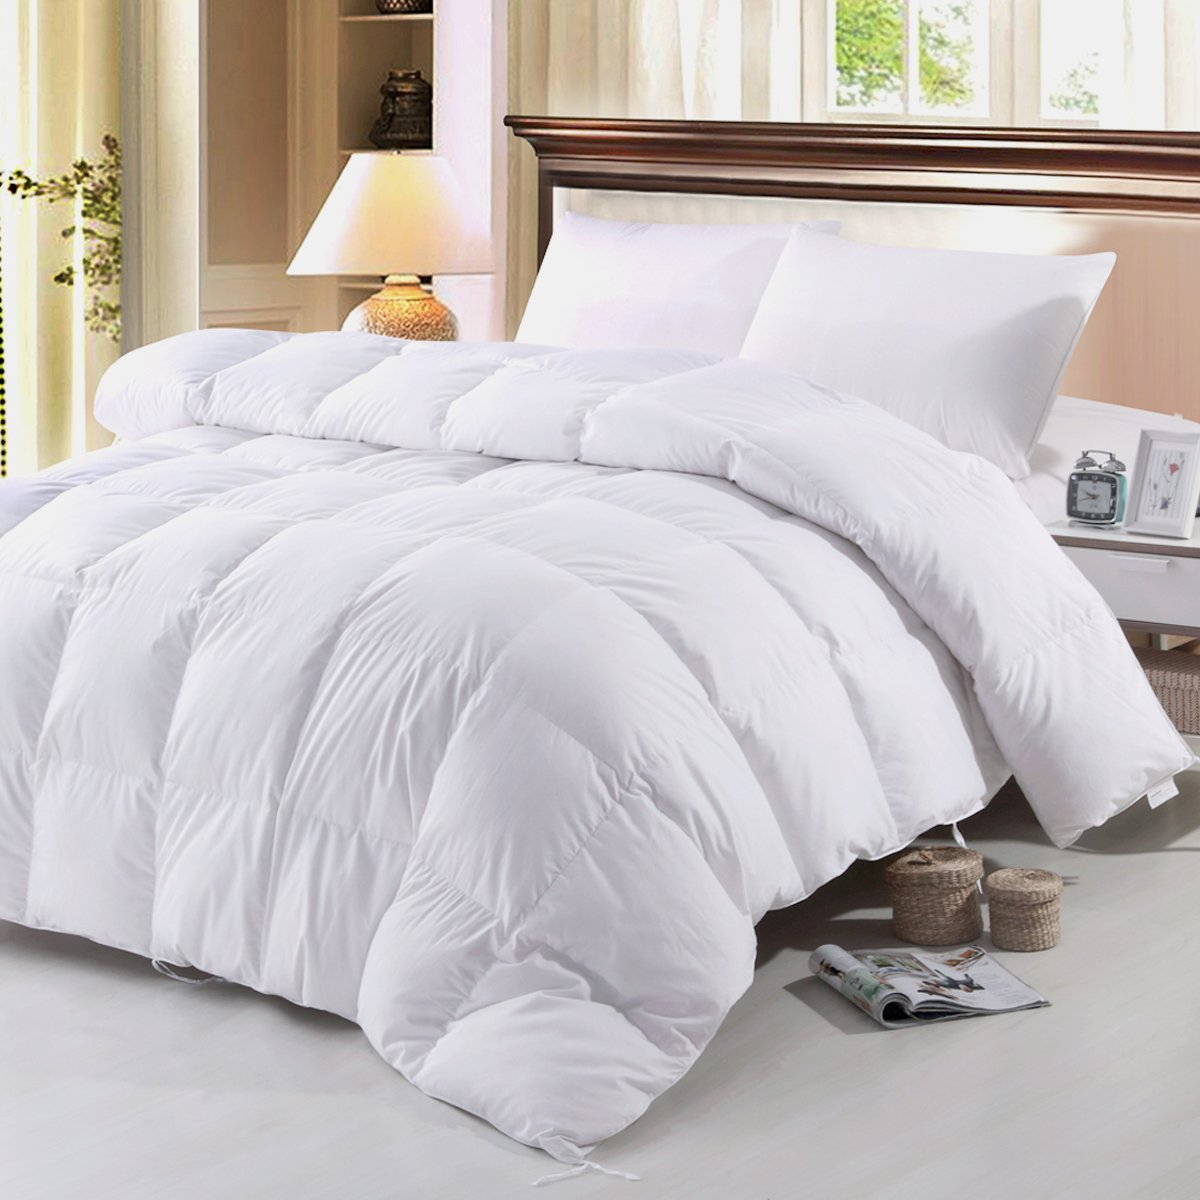 ZOOM LUAN GOOSE DOWN and FEATHER Comforter King Size White Bedding,Duvet Insert with Corner Ties-box stiched 100% Cotton Shell,All Season Down Comforter (King size 102-by-90 inch) by ZOOM LUAN